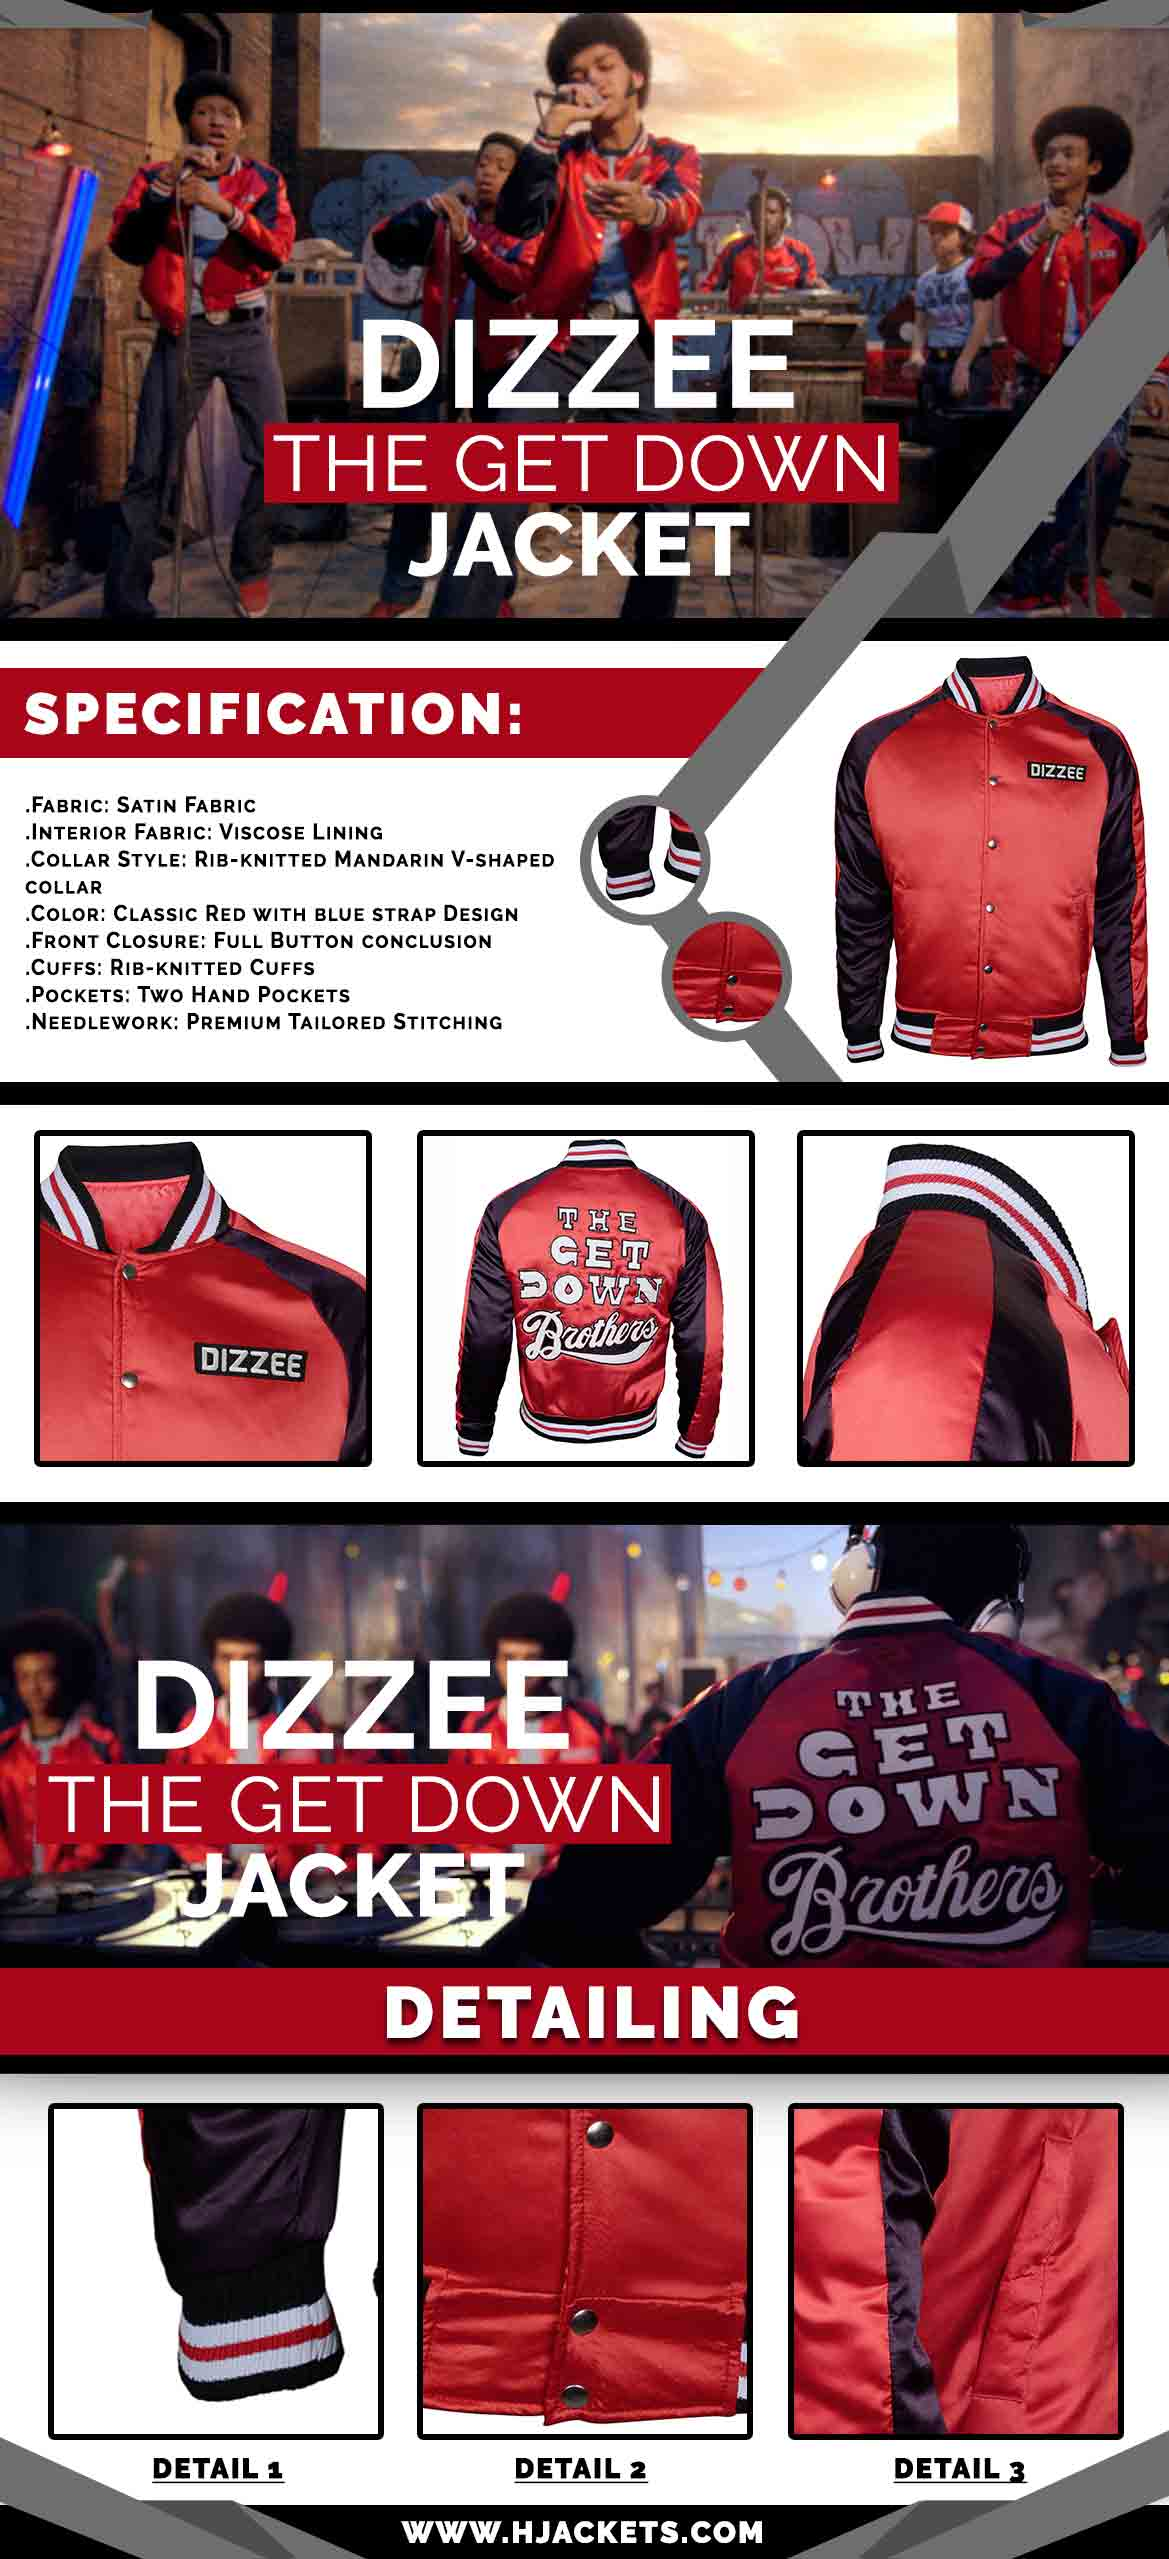 The Get Down Jacket Infographic